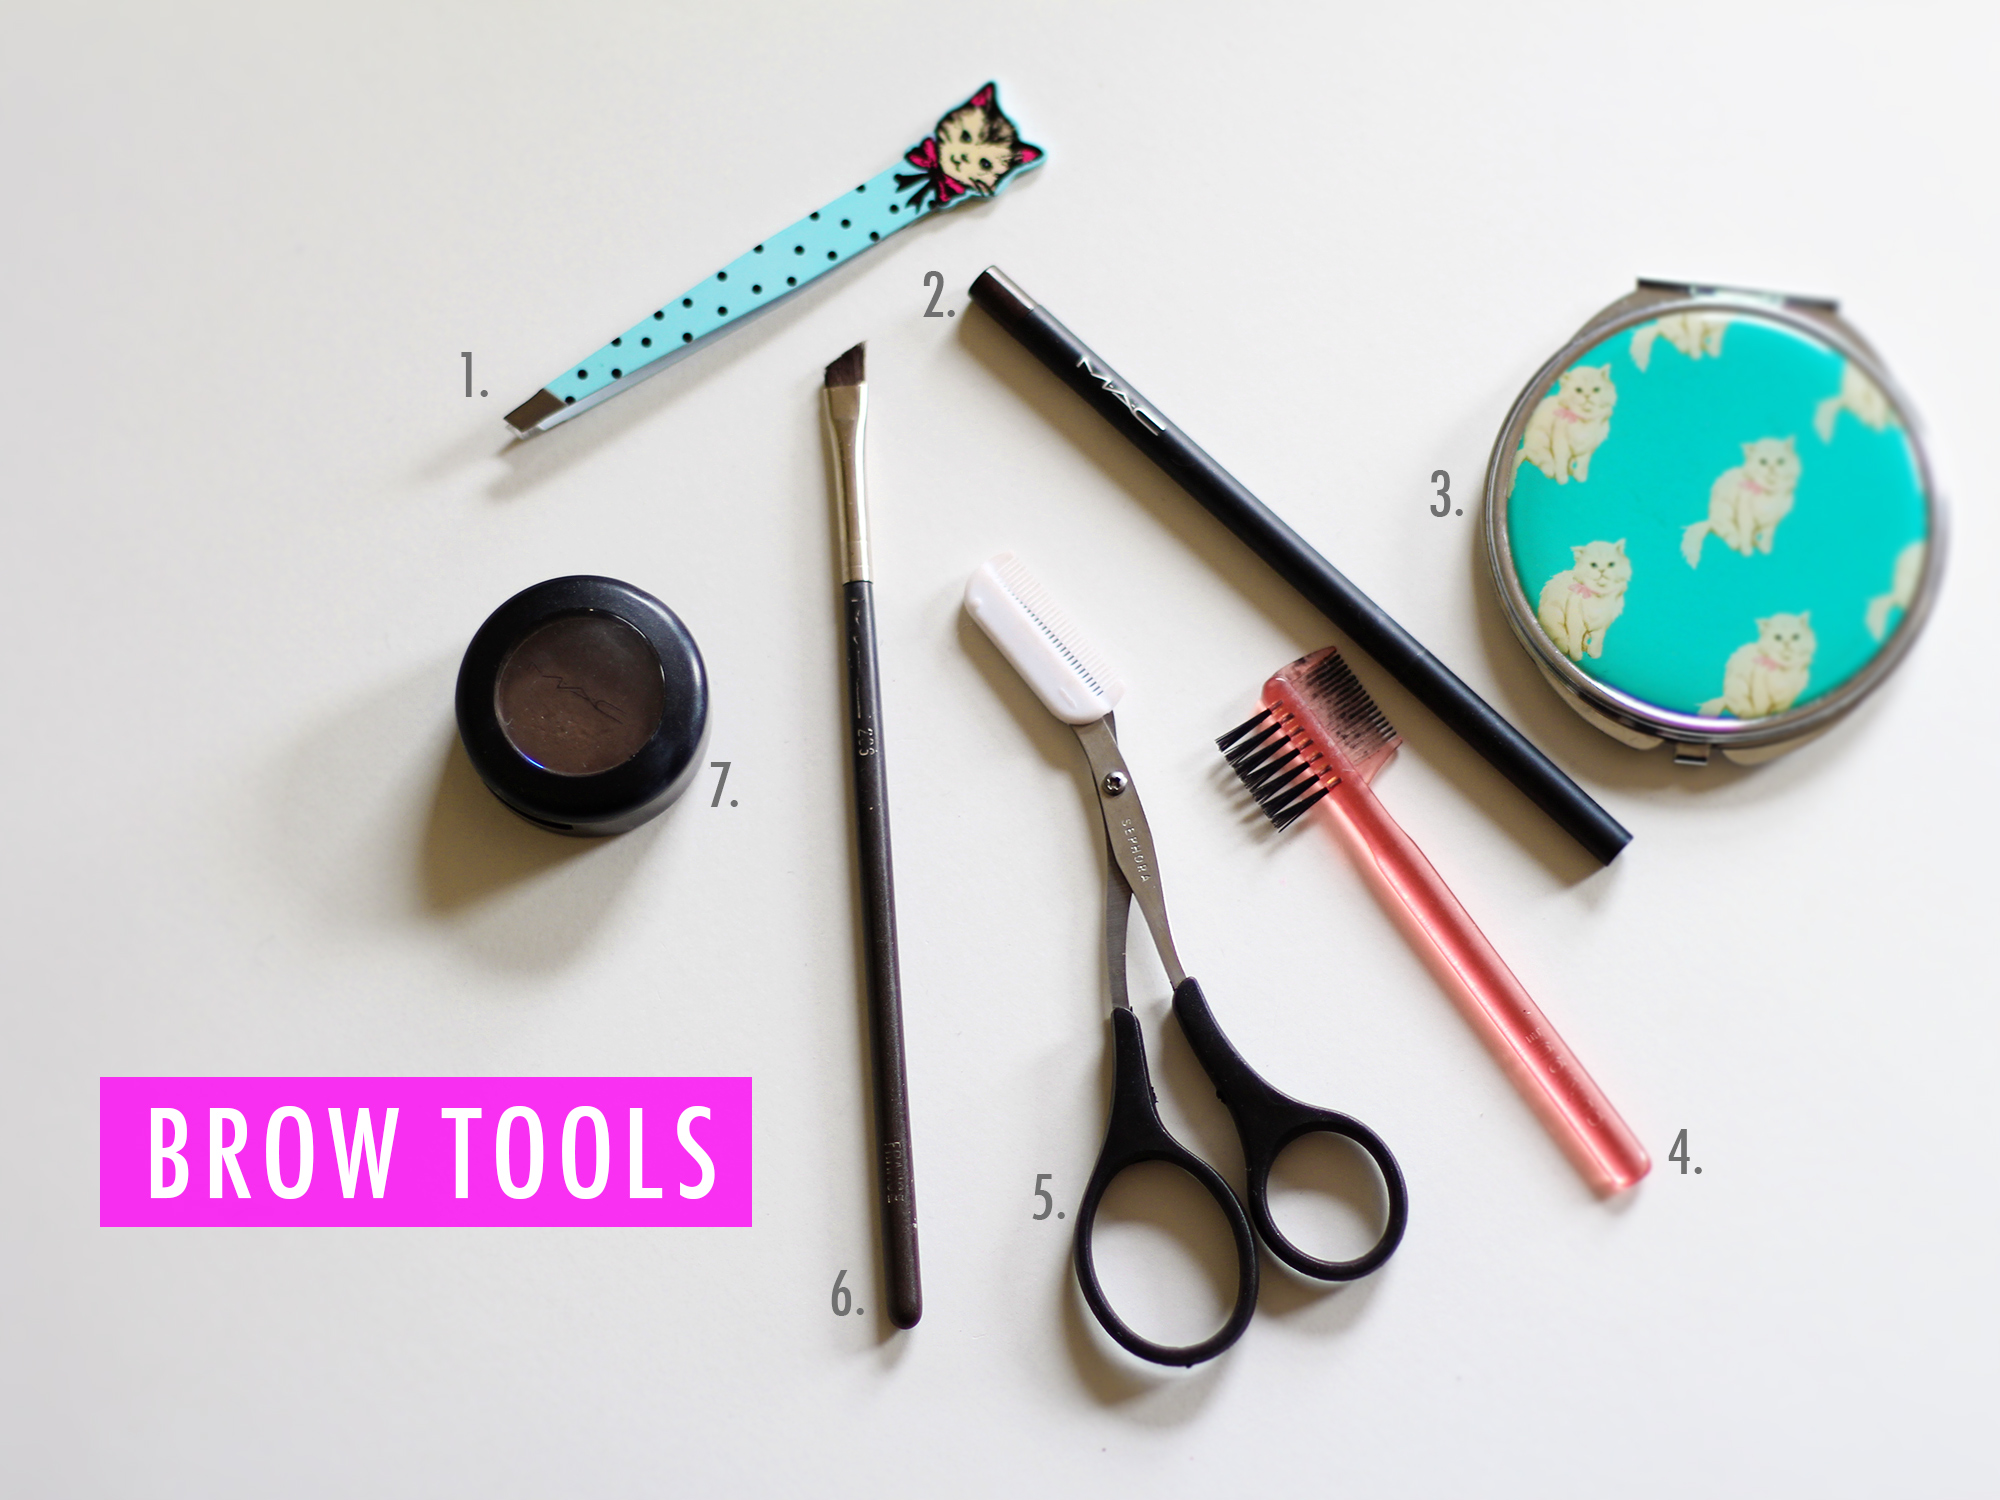 TOOLS FOR BROWS // S.S. Heart